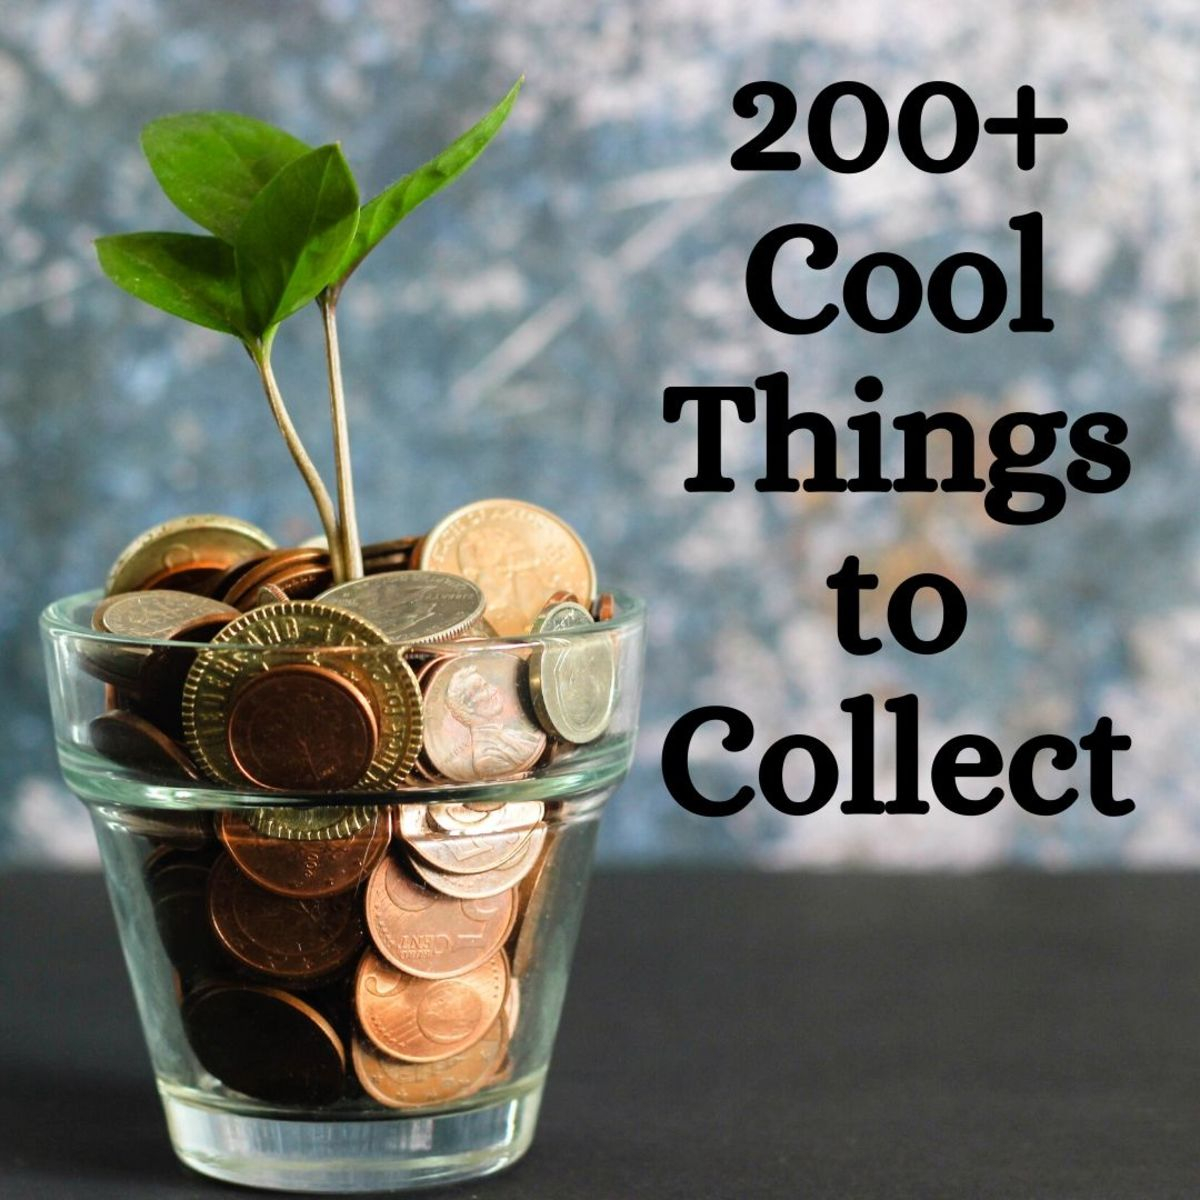 Looking for something new to collect? Get inspiration from this ever-growing list of interesting and highly collectible items!